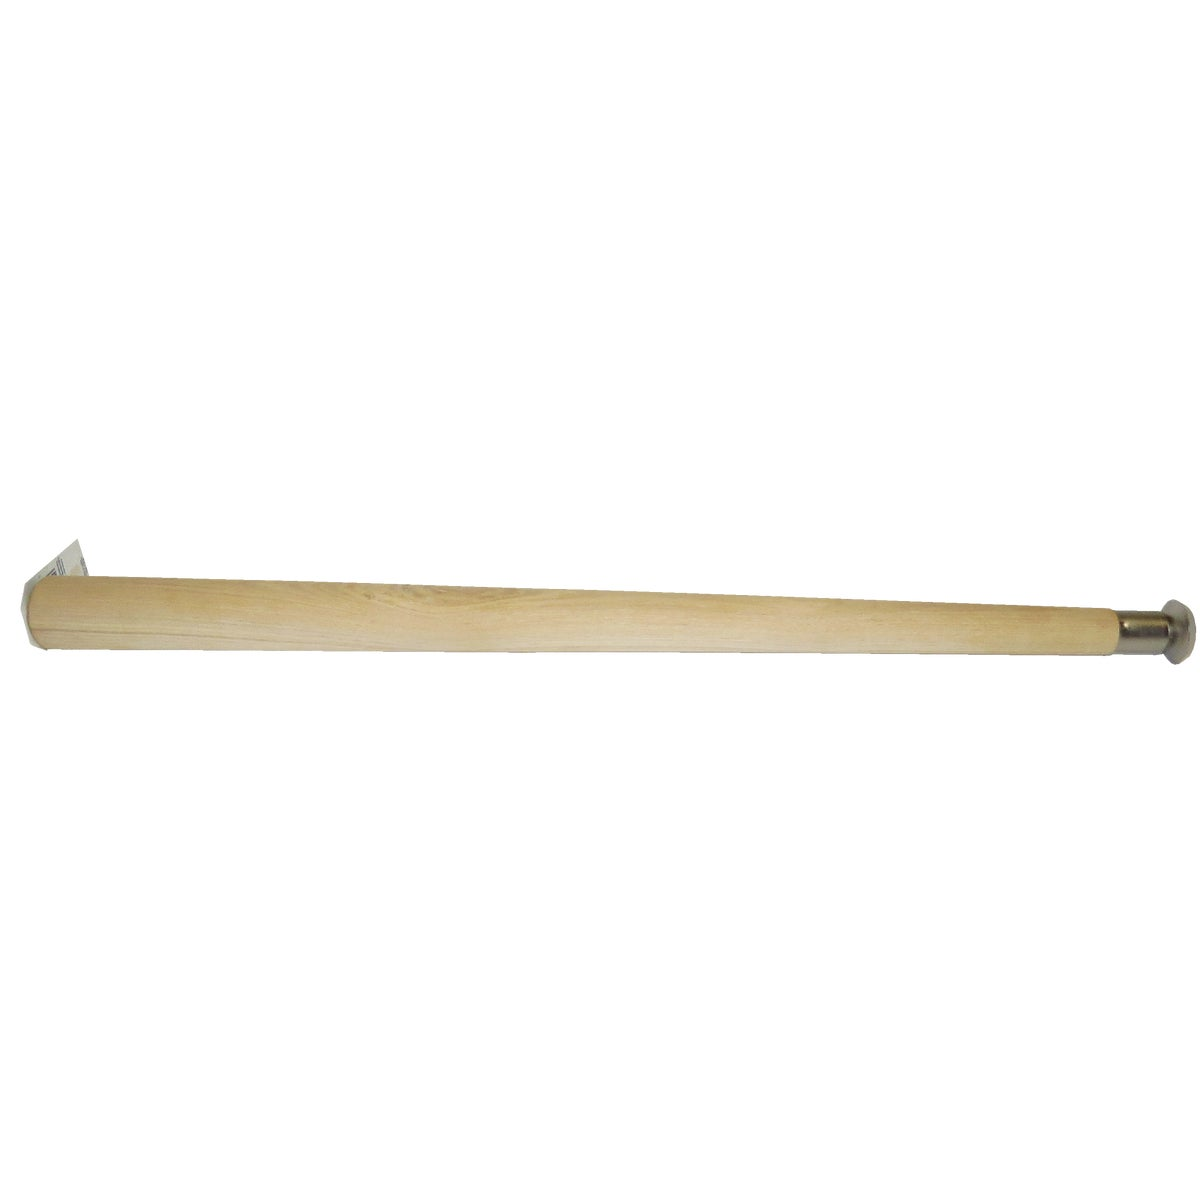 "22"" ROUND TAPER LEG - 2522 by Waddell Mfg Company"